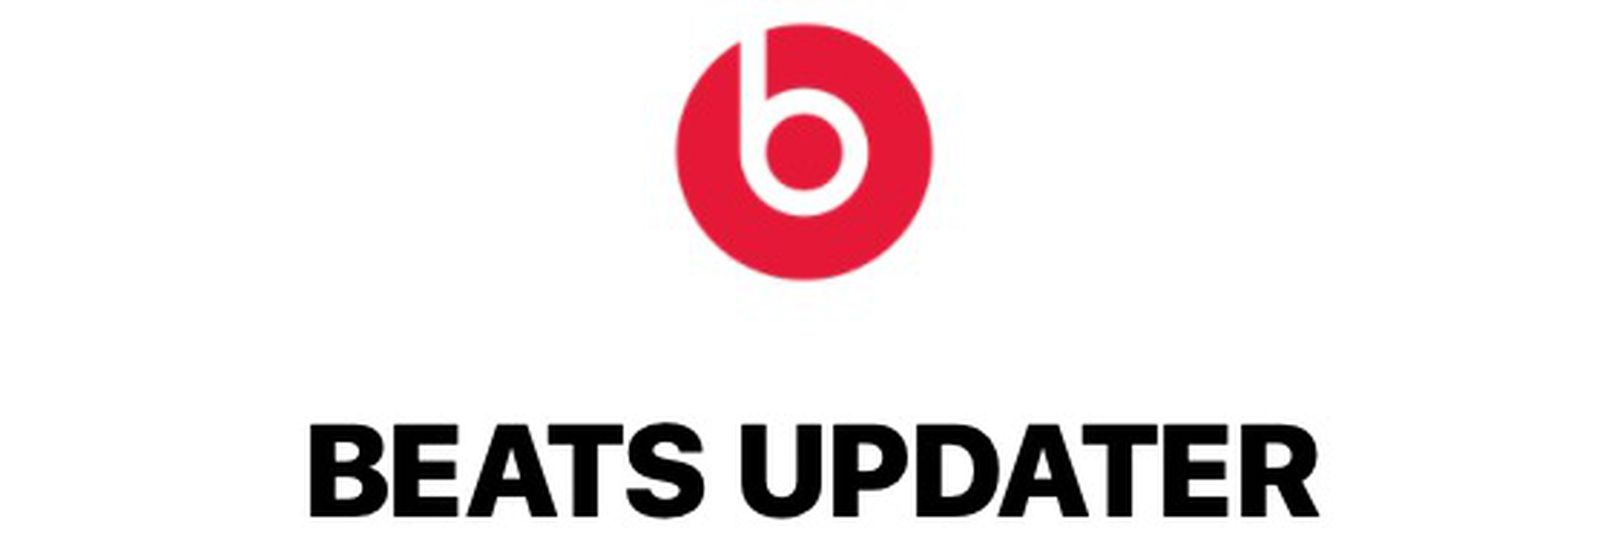 Apple Officially Retires Beats Updater Utility in Favor of Over-the-Air  Firmware Updates - MacRumors